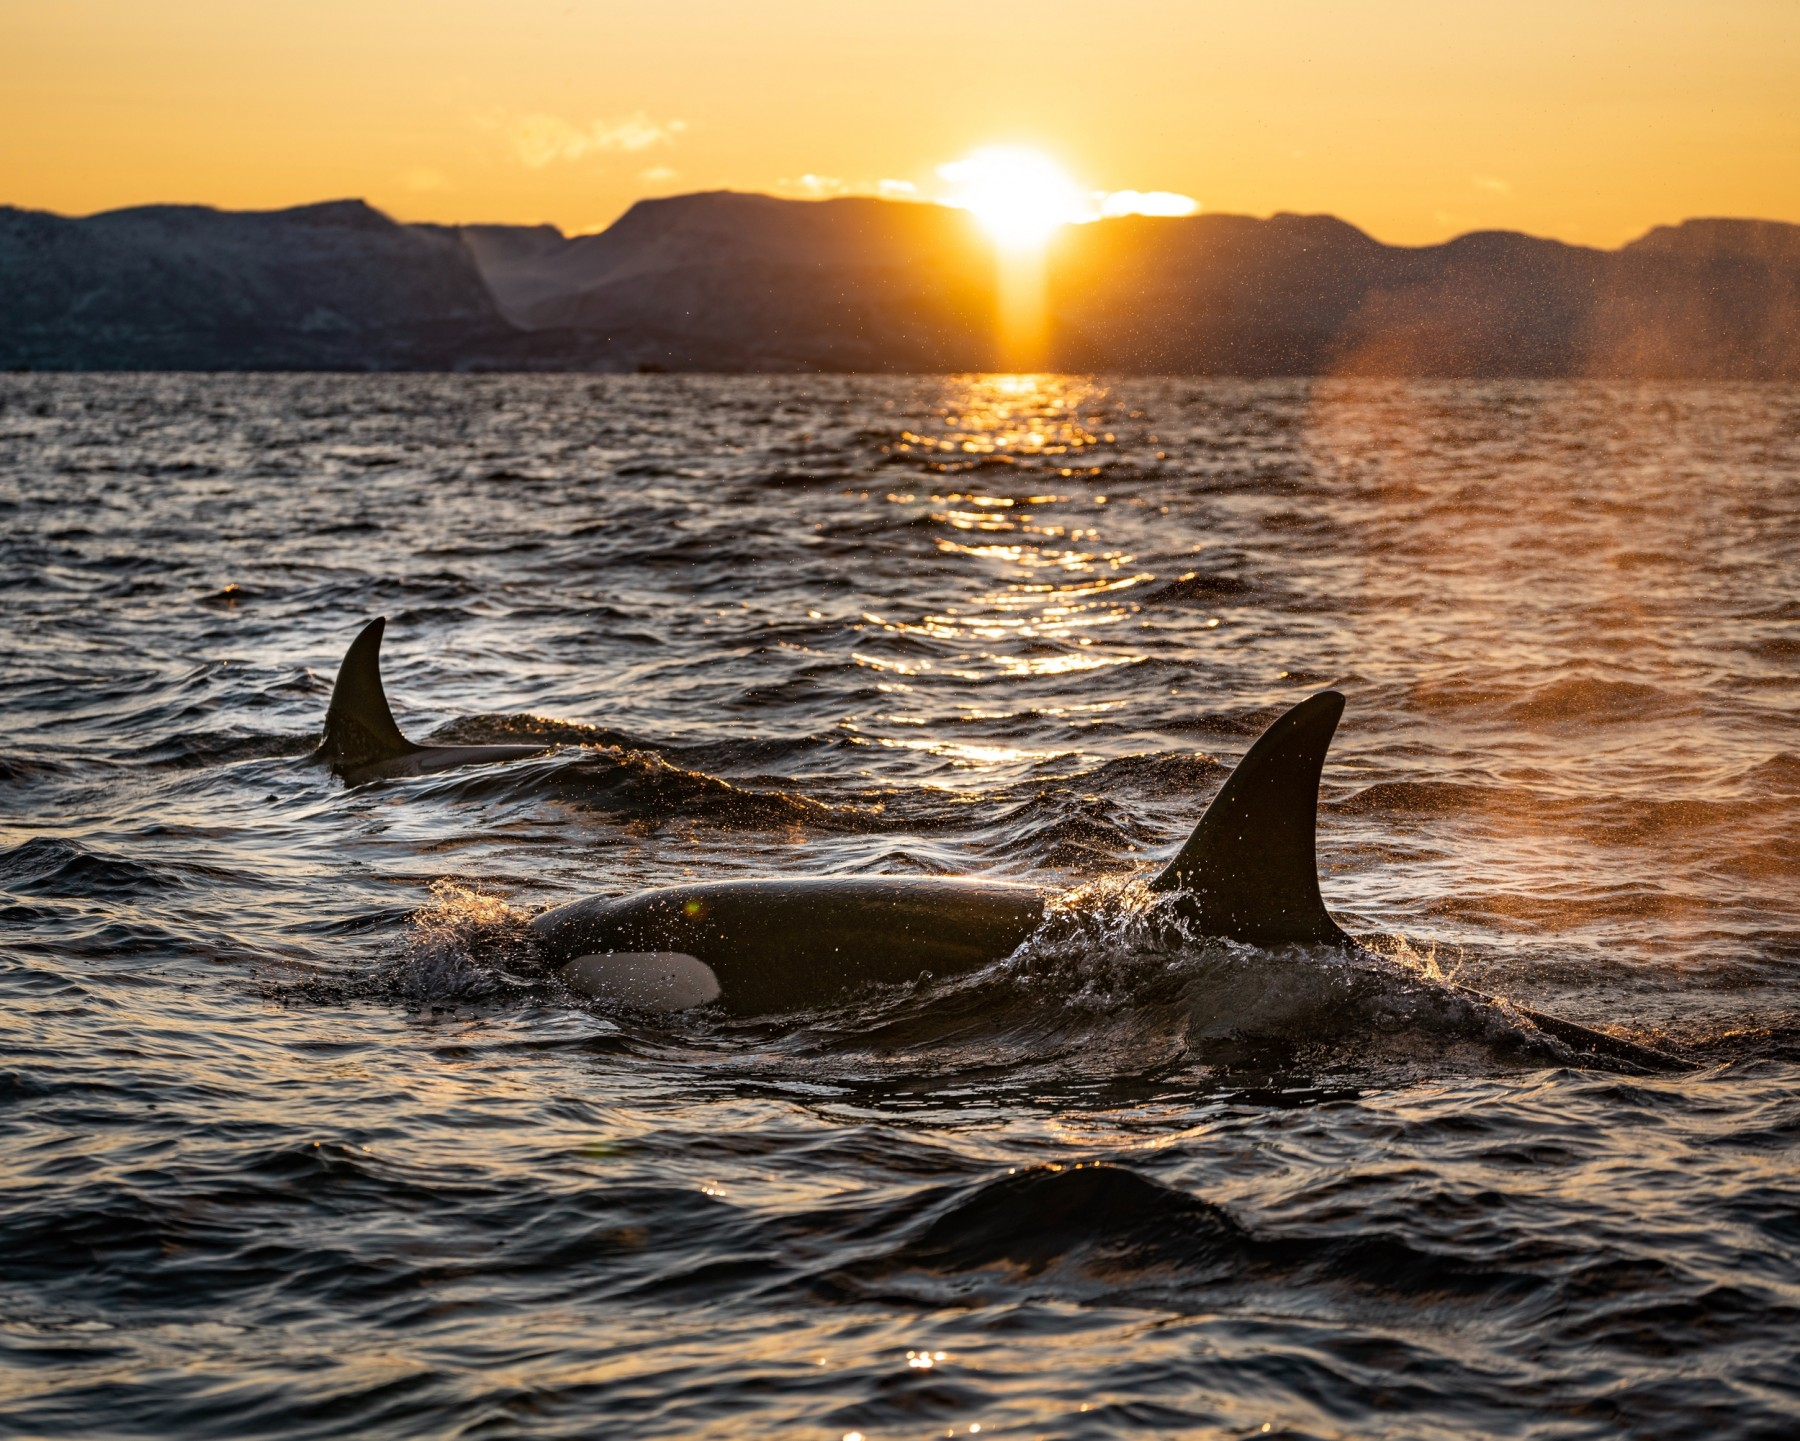 Wild Orcas surface at sunset - by Bart Van Meele